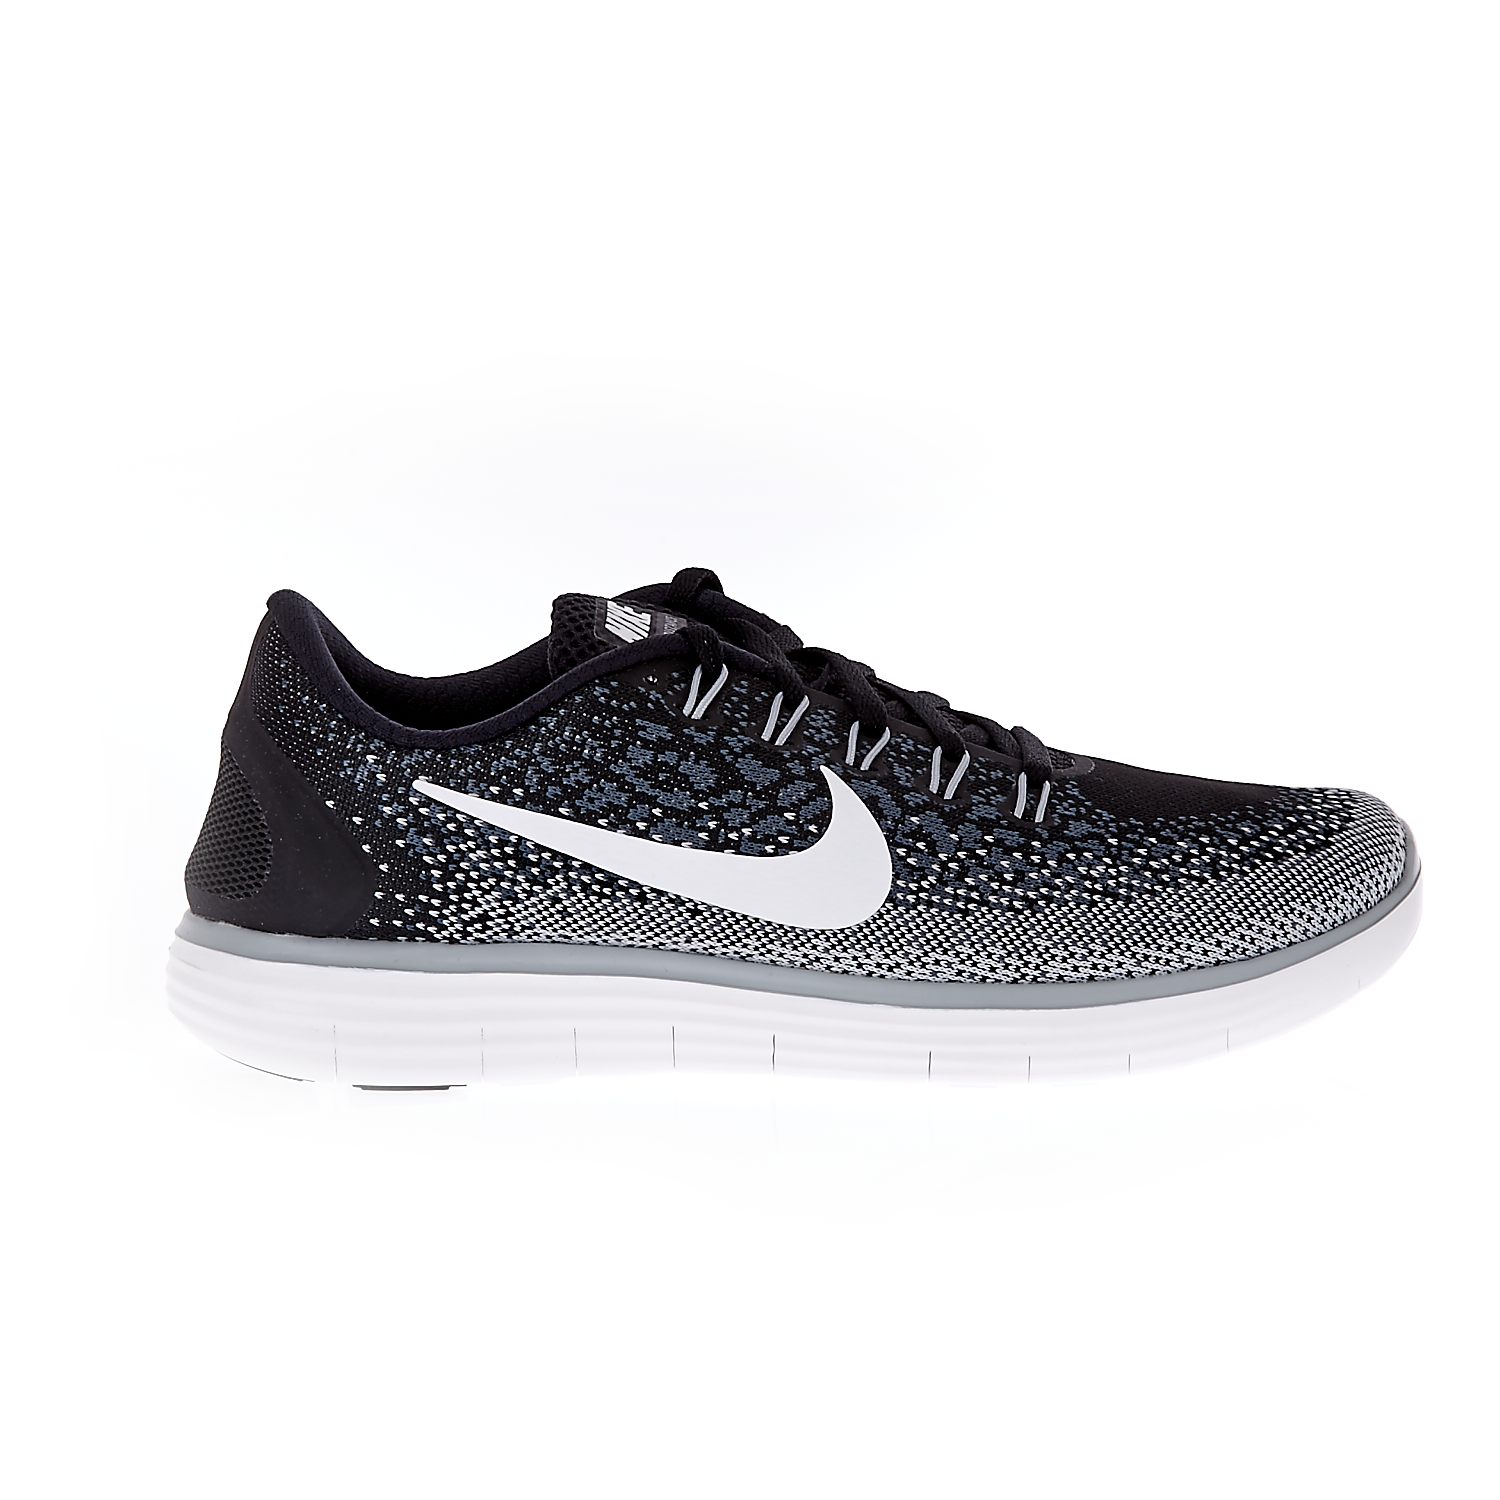 NIKE – Ανδρικά αθλητικά παπούτσια NIKE FREE RN DISTANCE μαύρα